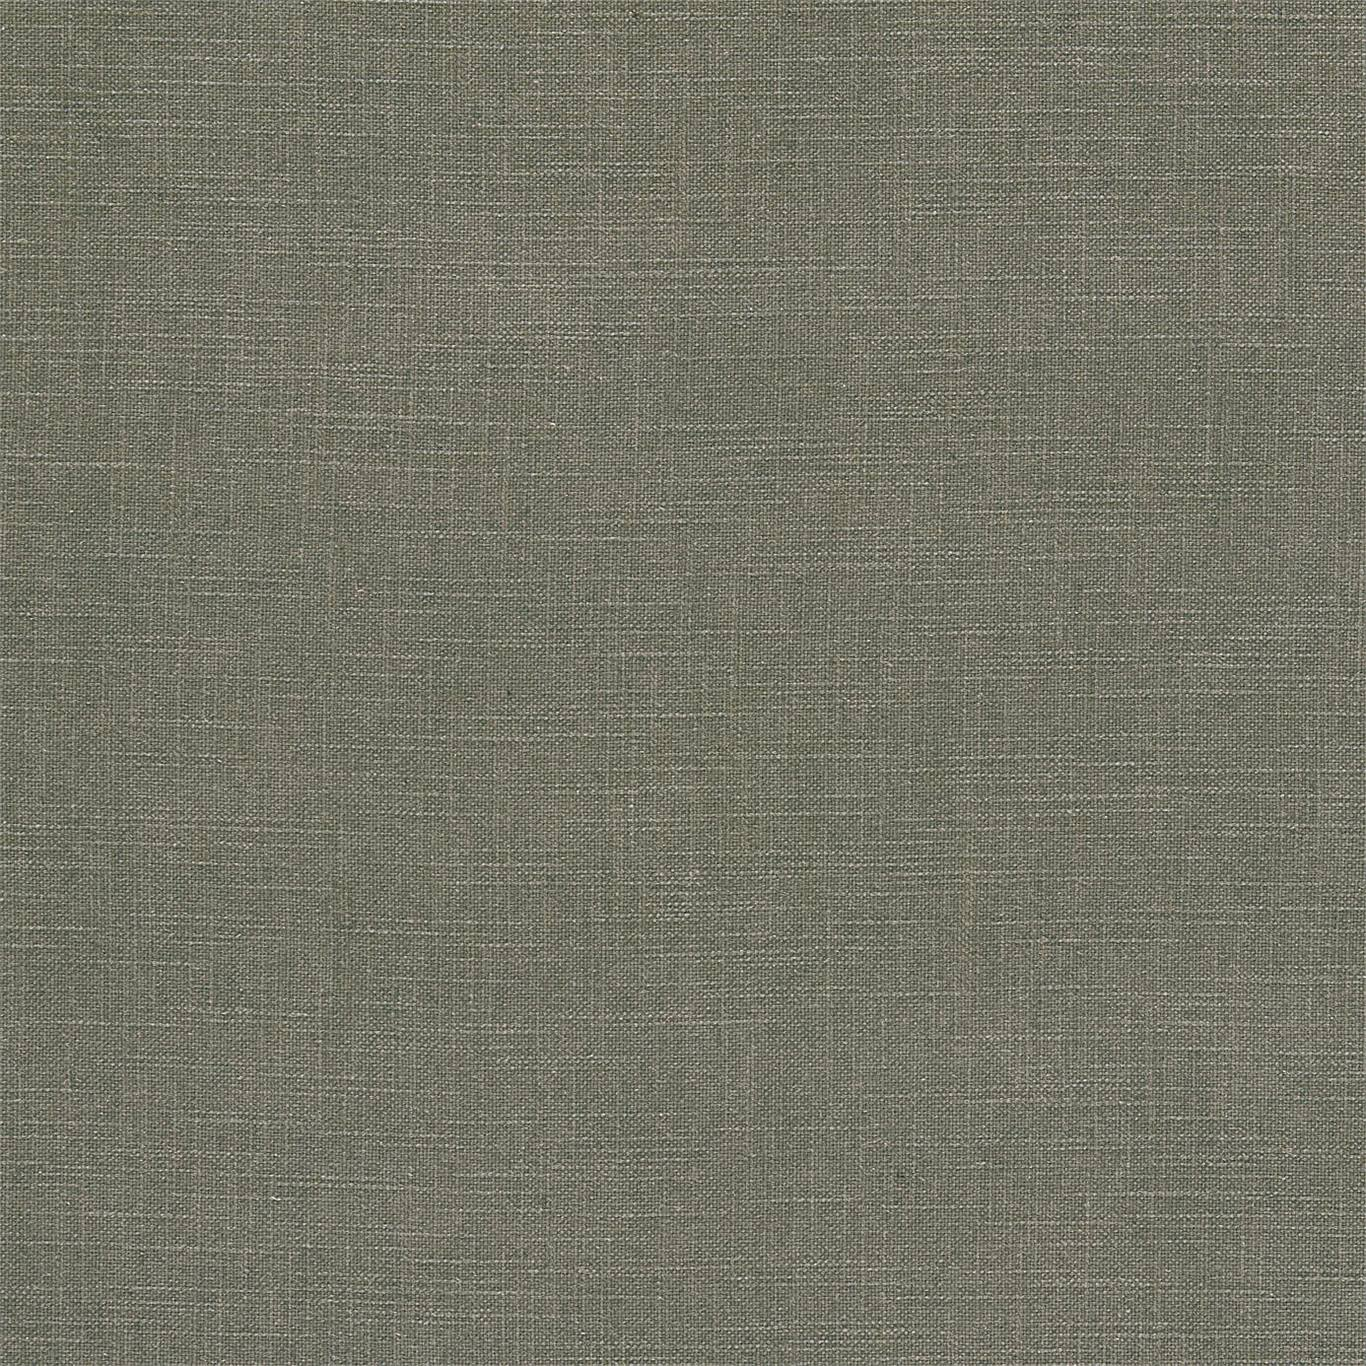 DTUC237127 Collection - Tuscany II Weaves Fabric